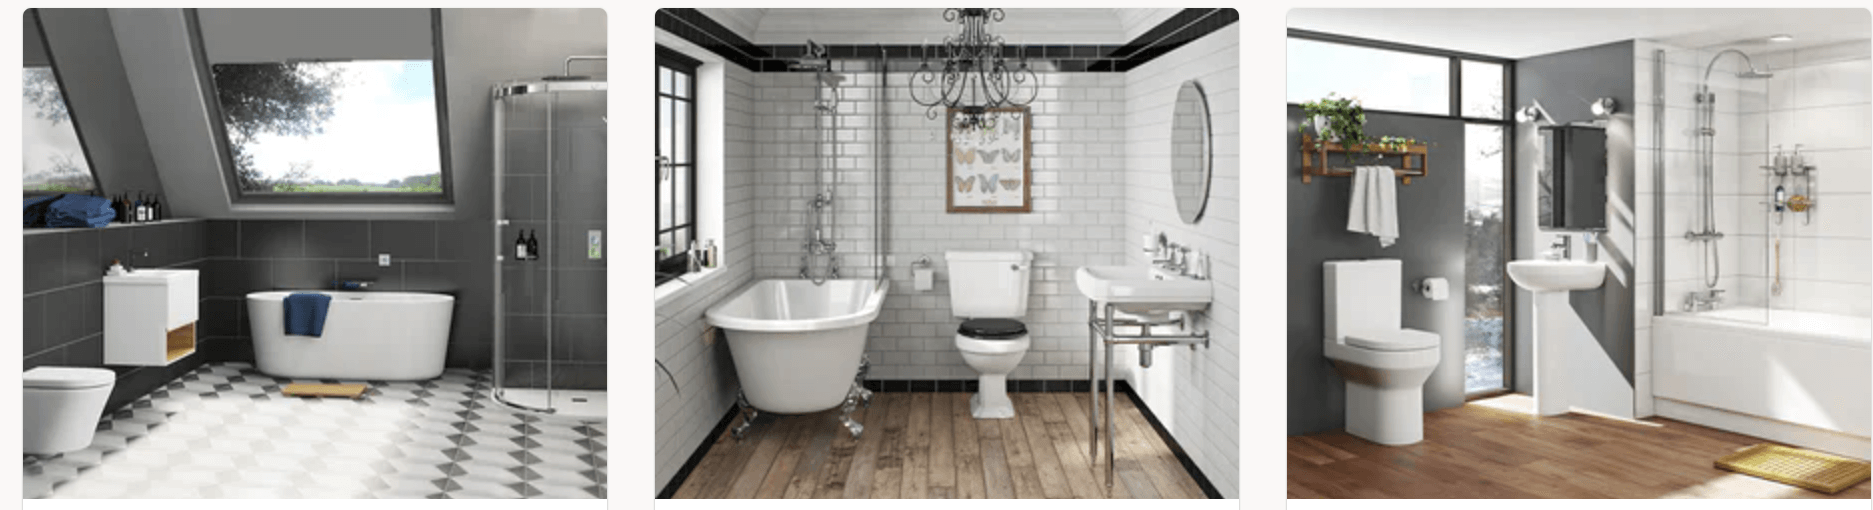 Victoria Plum Bathroom Styles